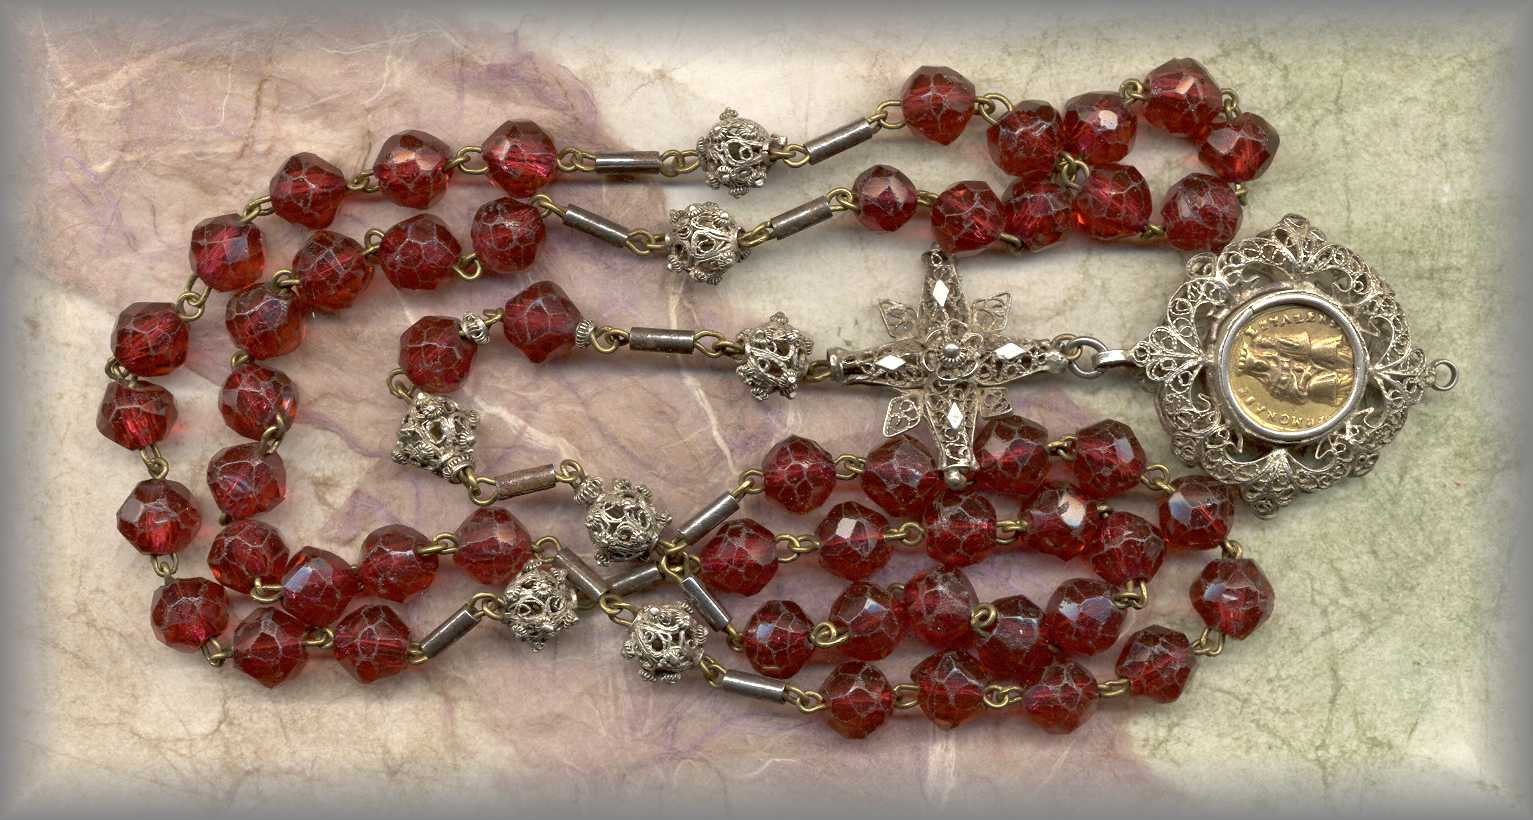 ANTIQUE ROSARY: 19c faceted red glass filigree - Bavaria